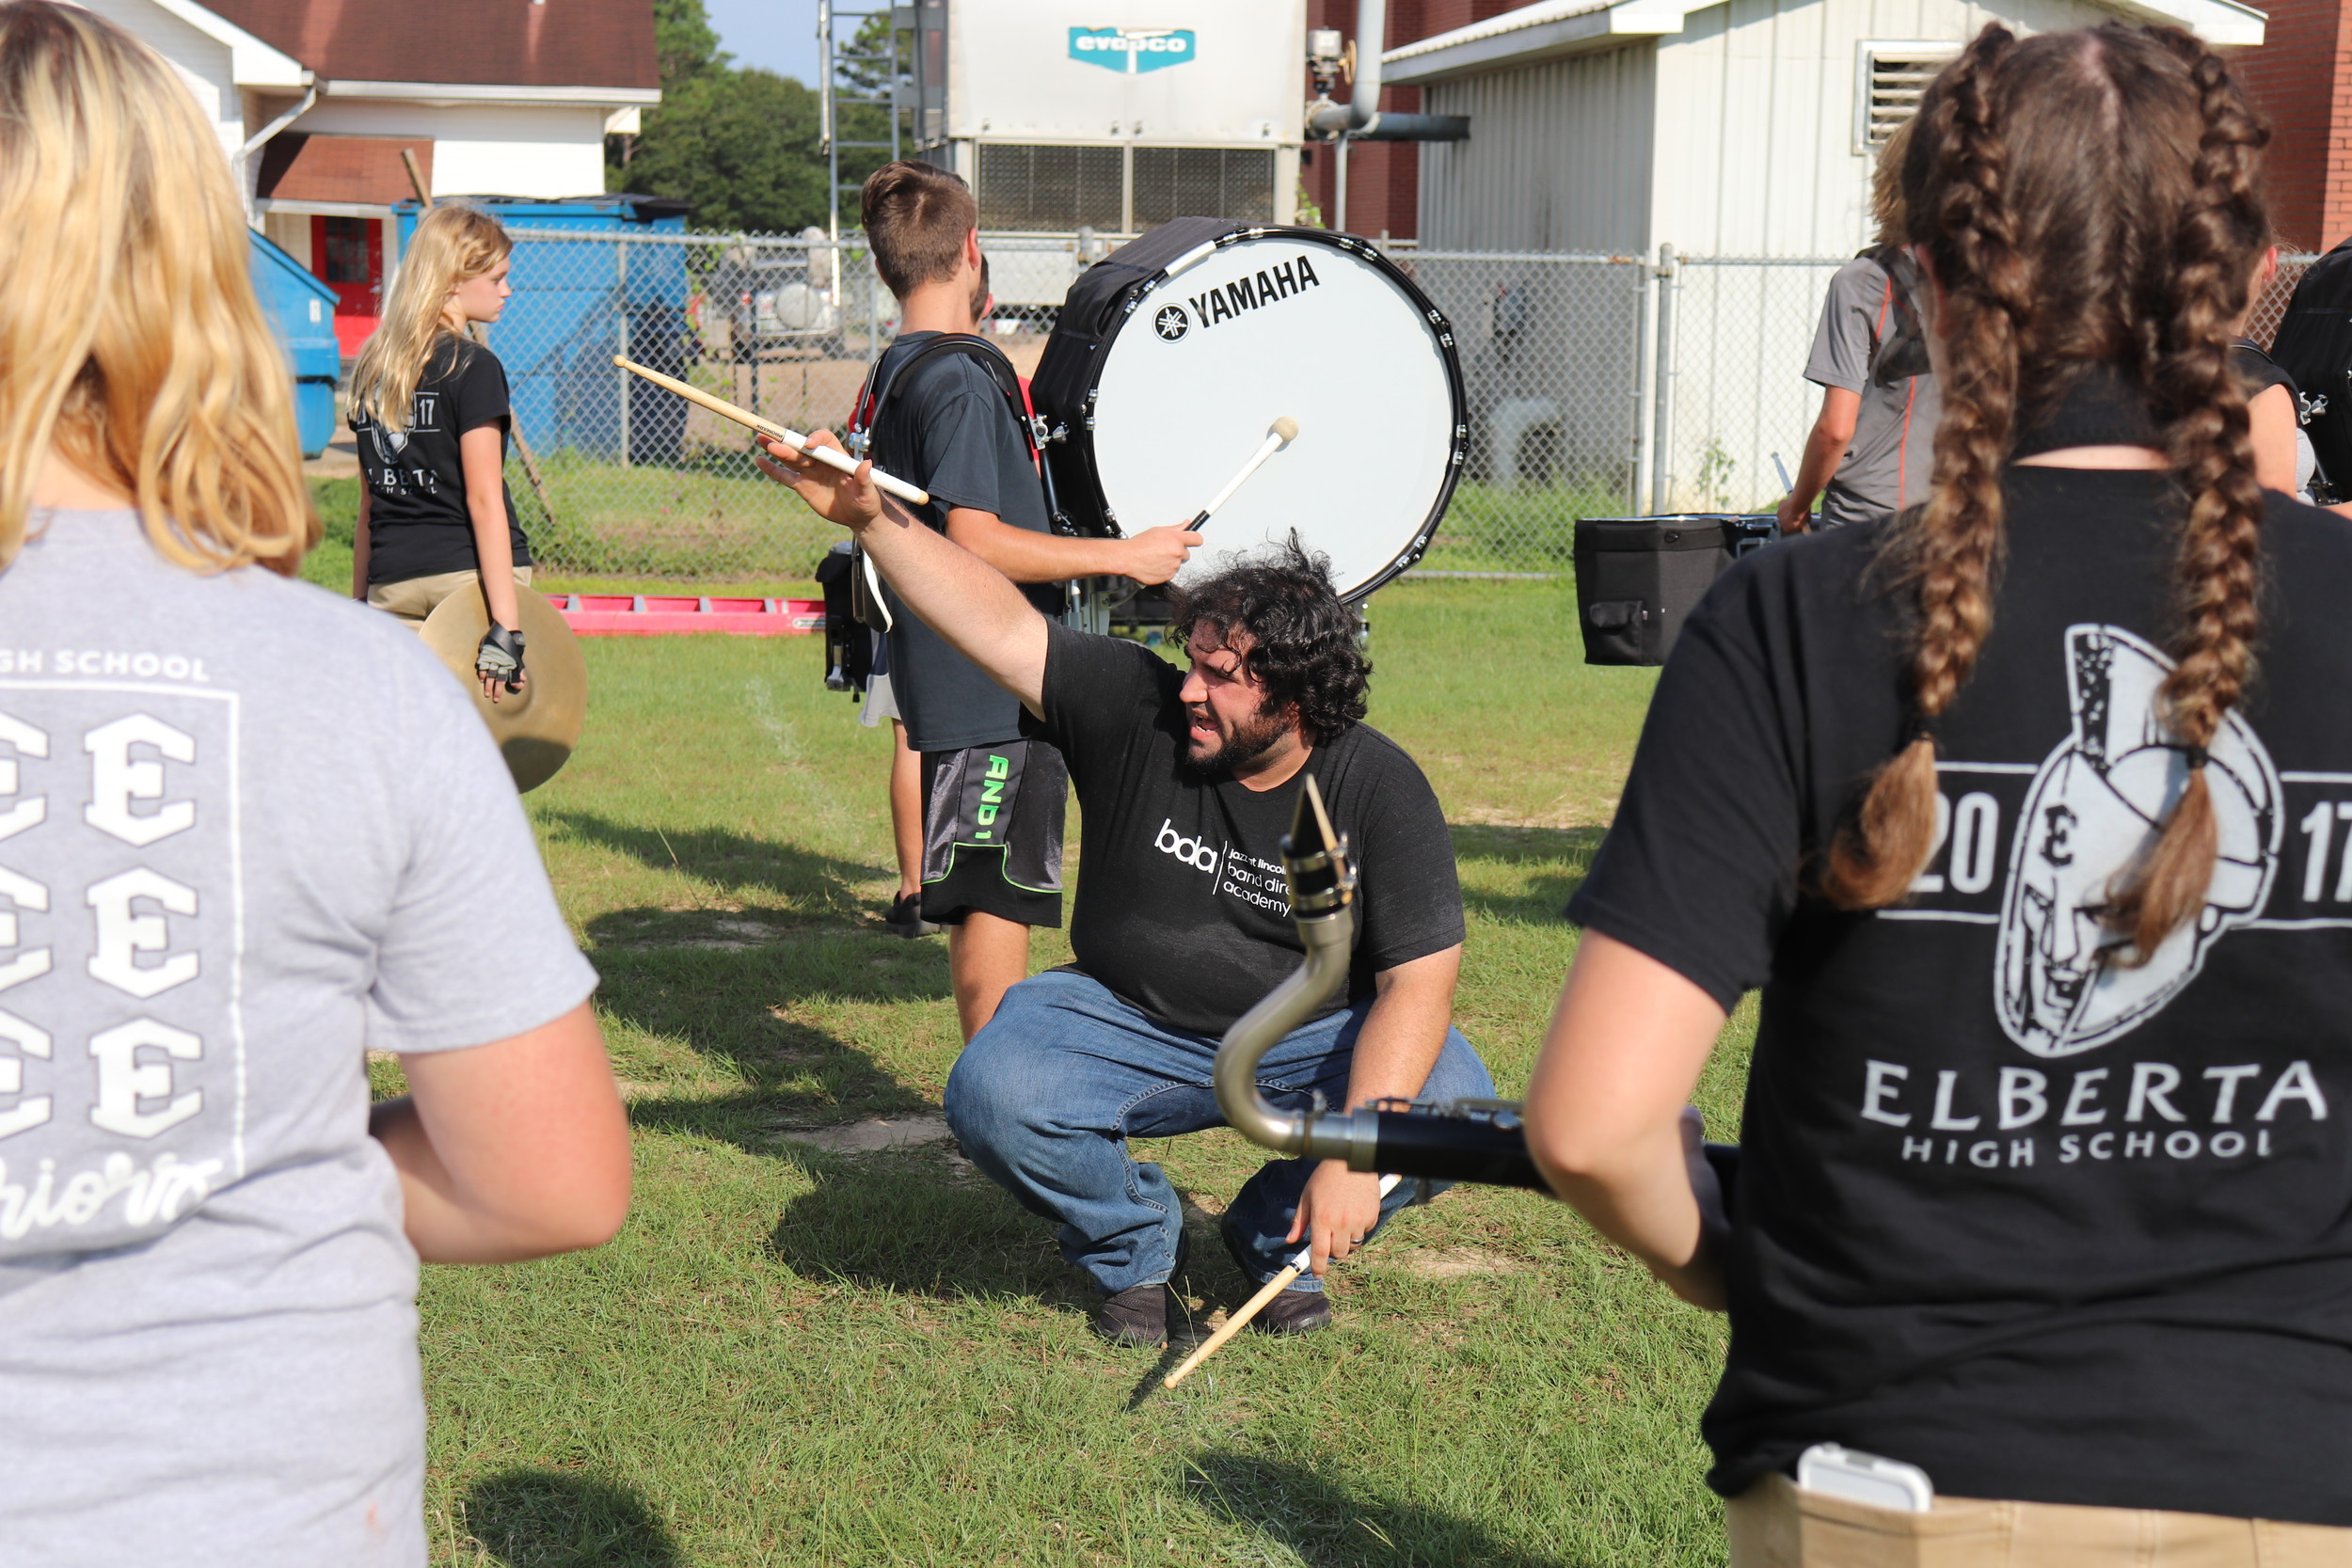 Elberta High School Band Director works with his students to help them learn marching movements during band camp.